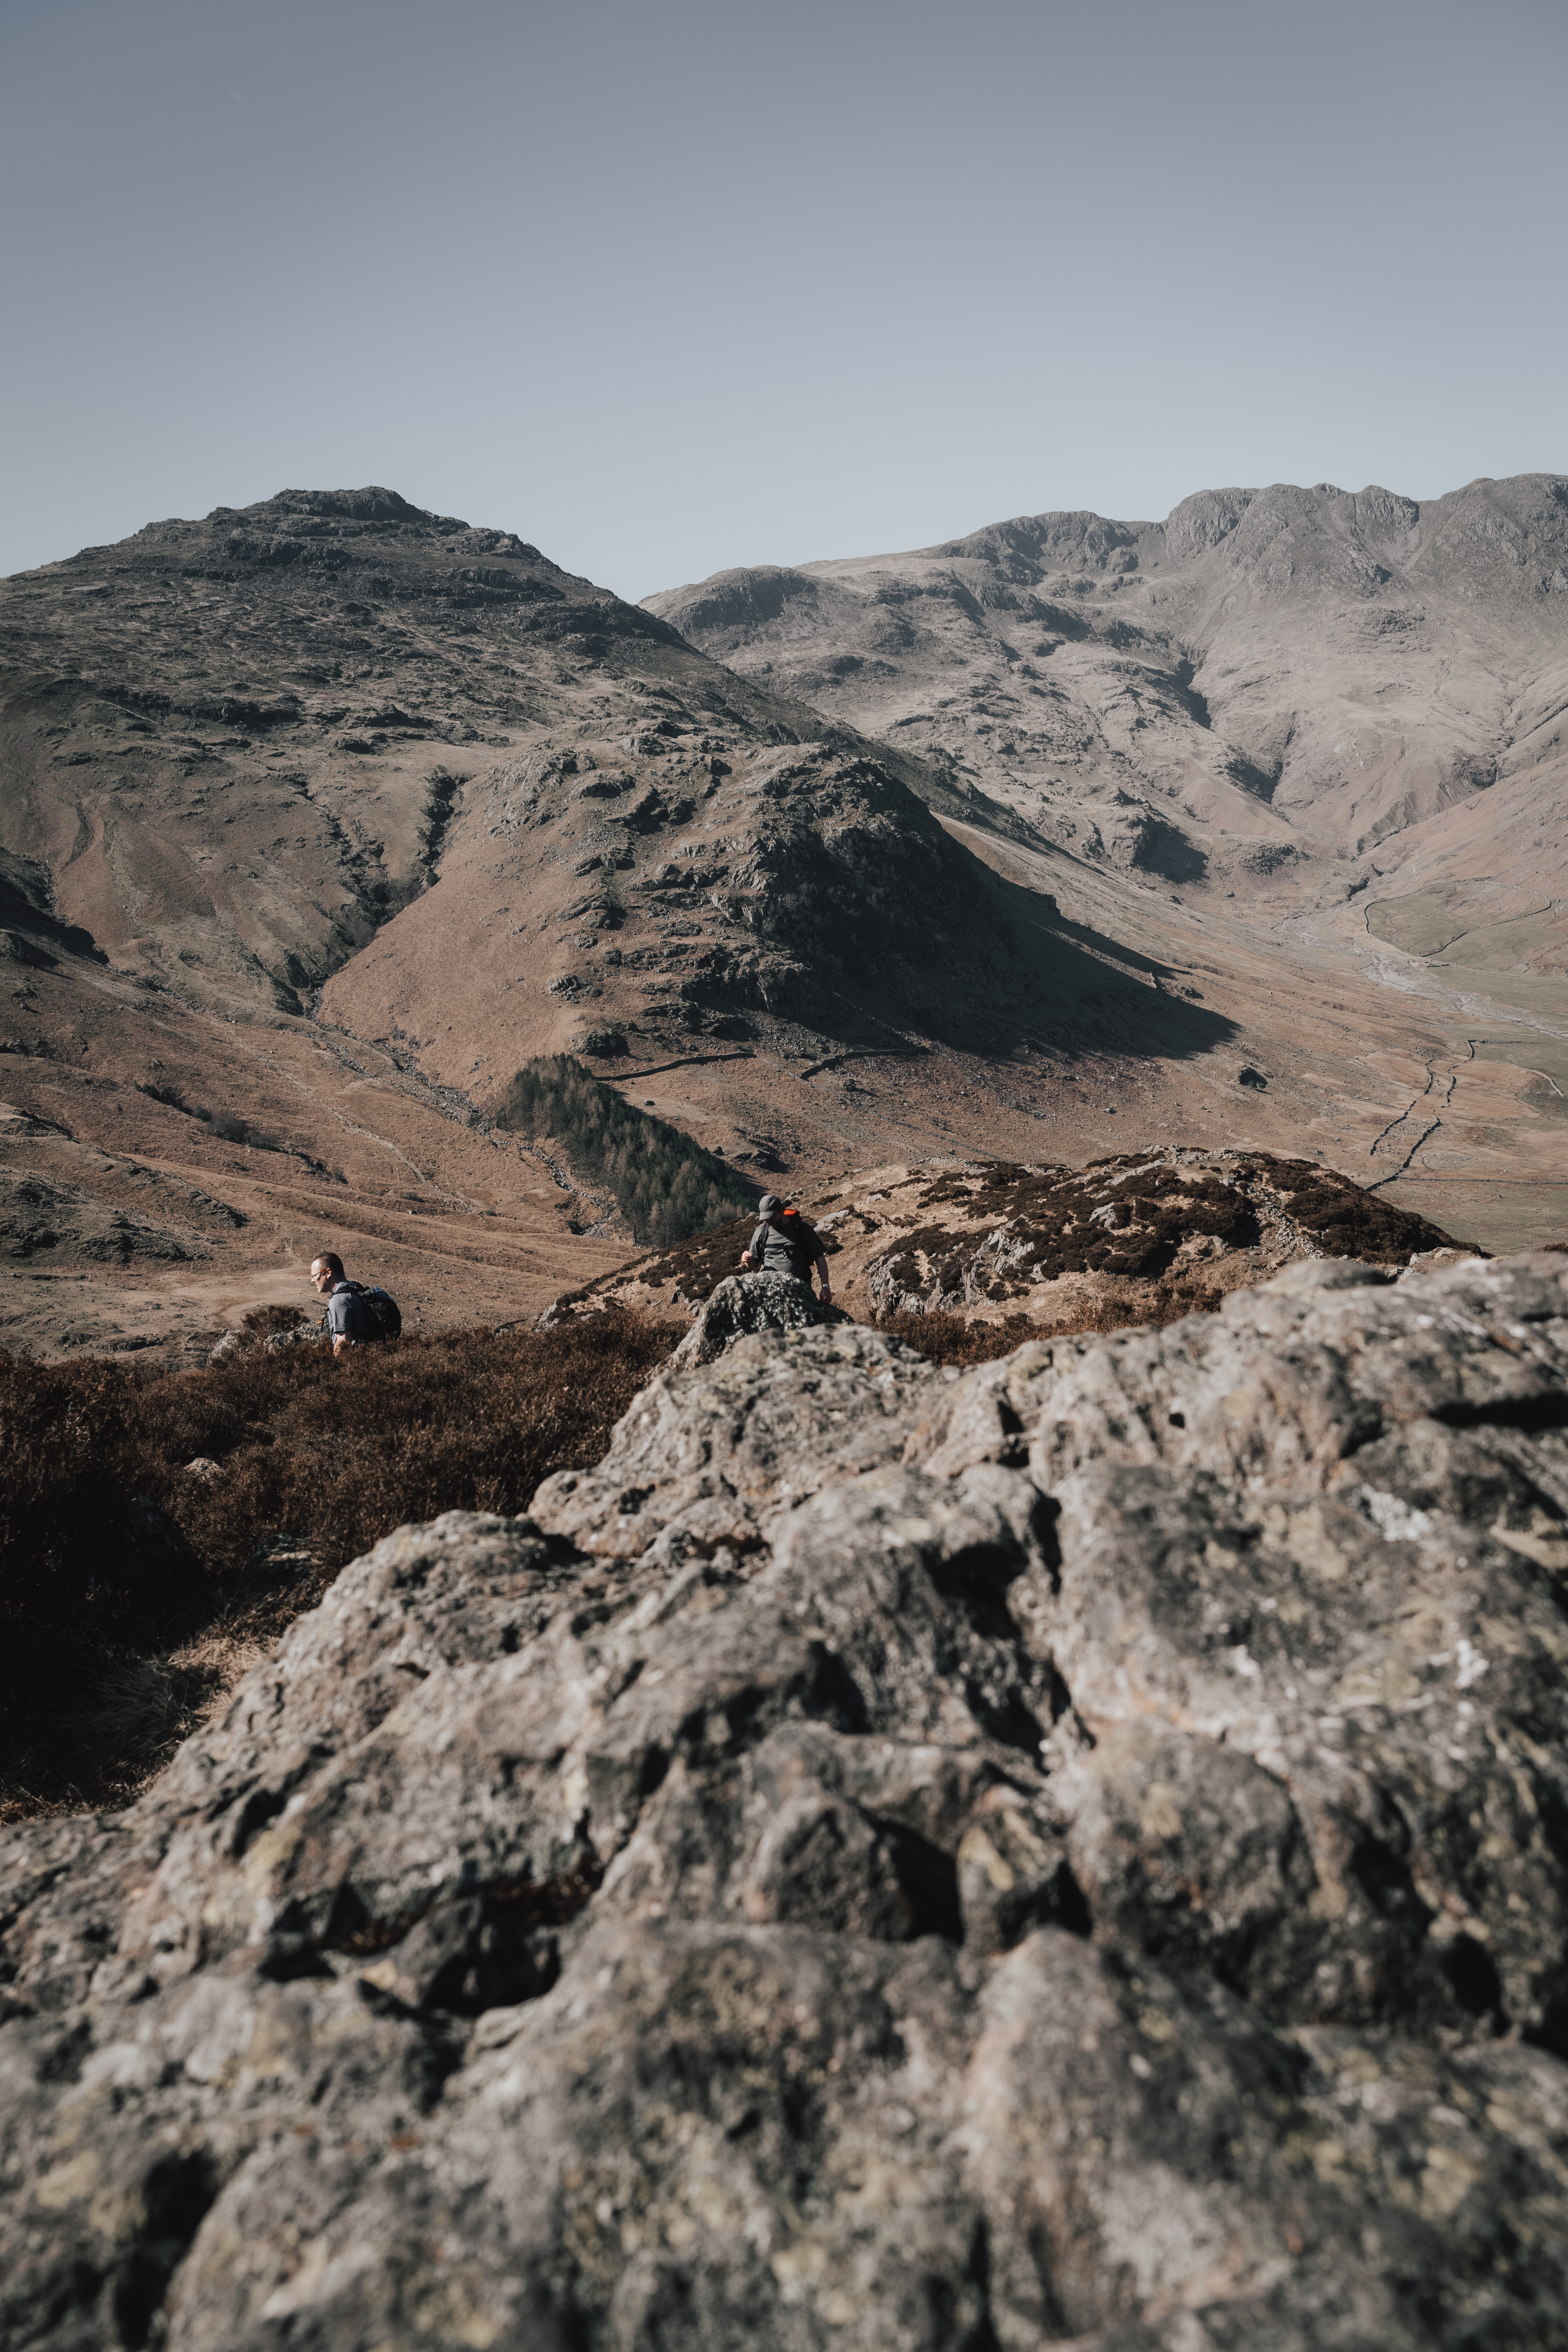 person in black jacket standing on rocky mountain during daytime